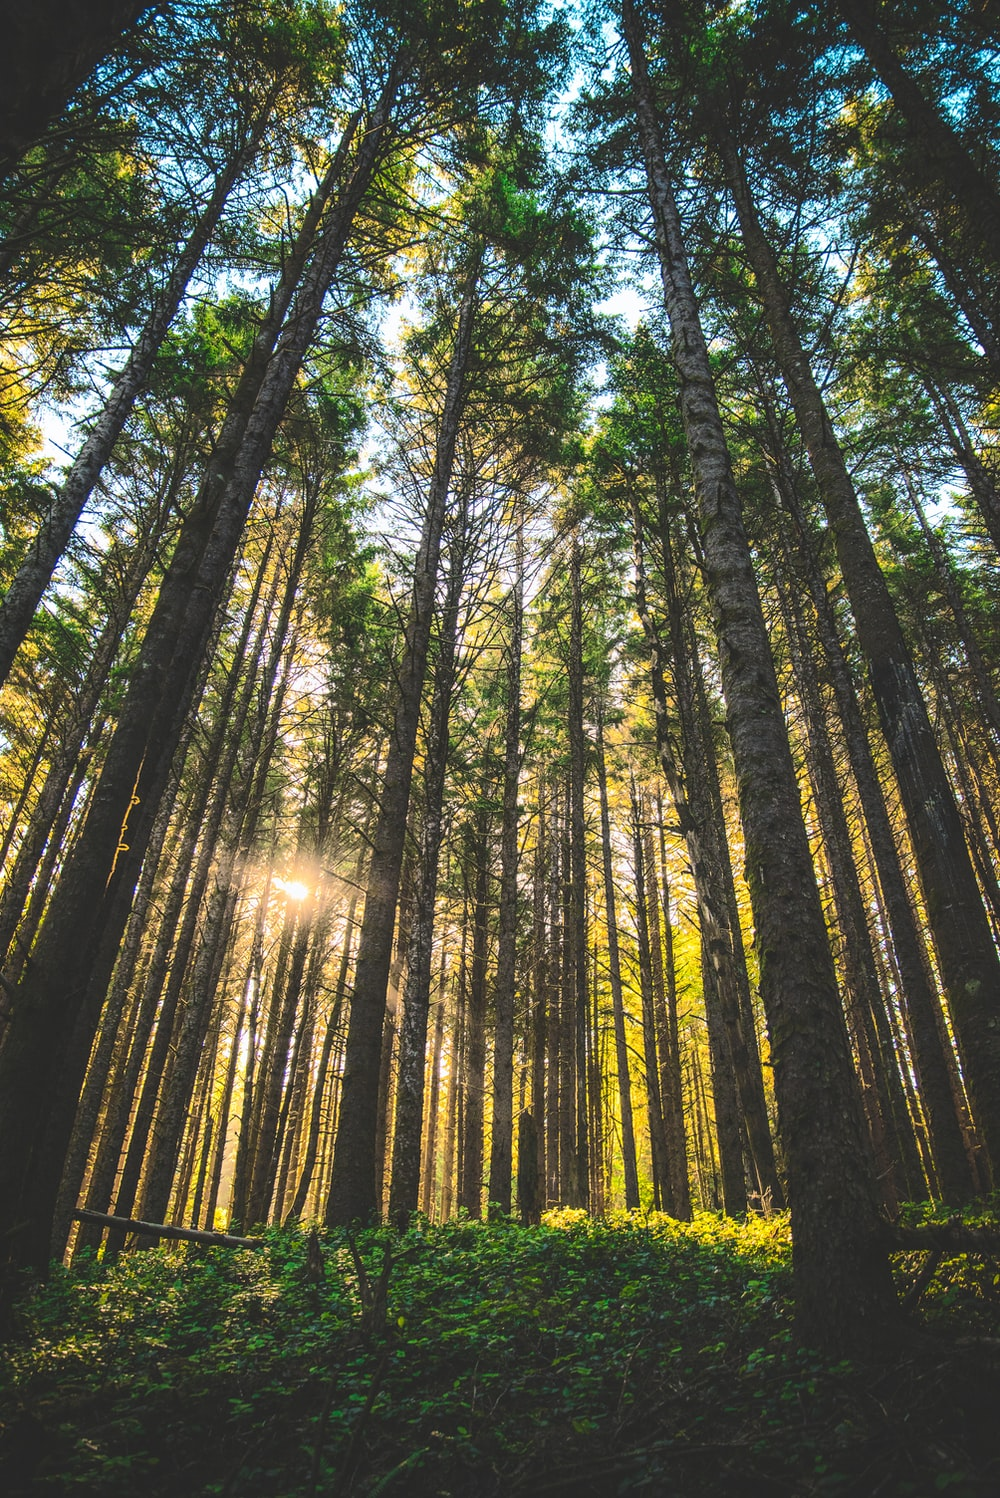 low-angle view photography of trees in forest